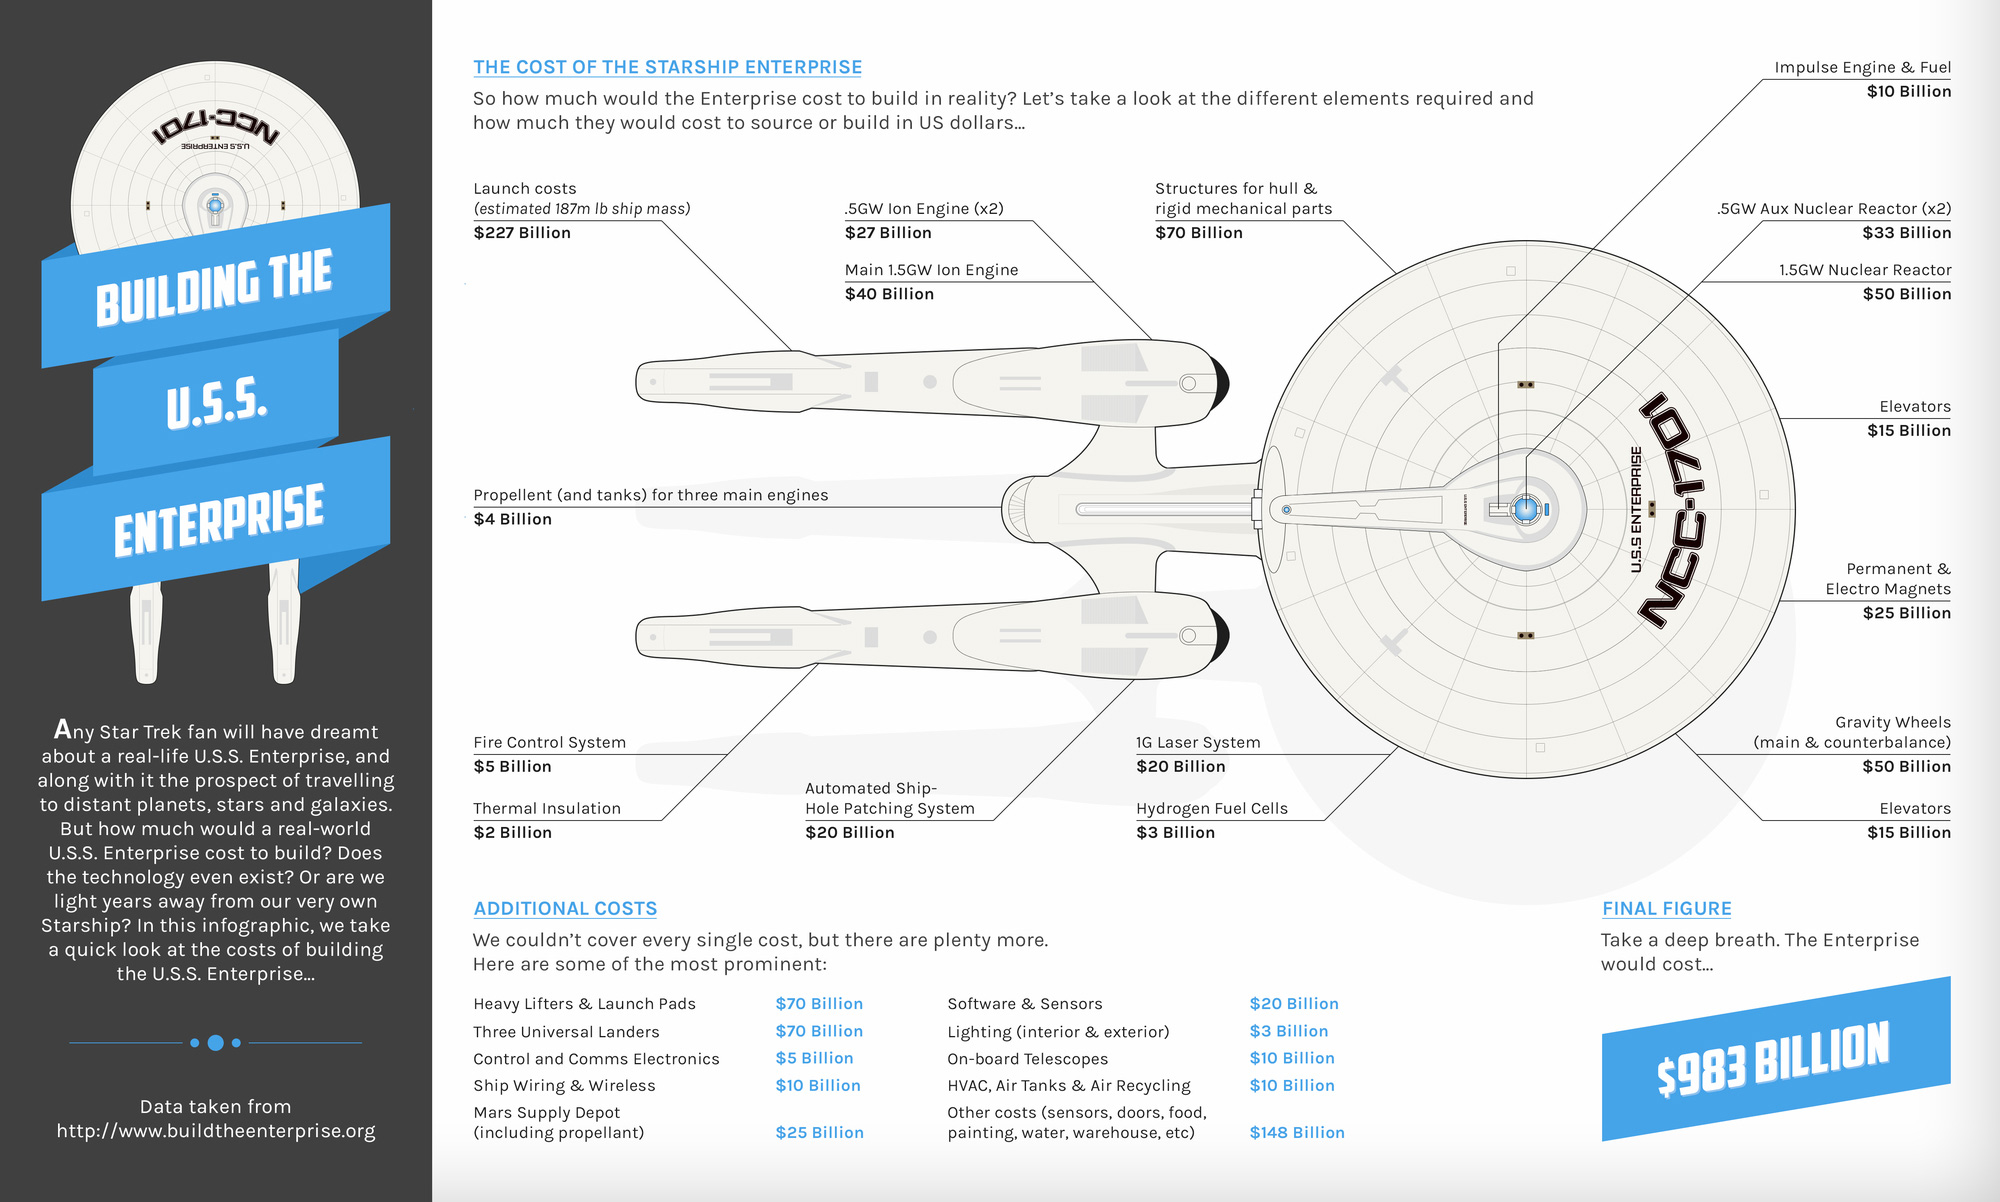 The Cost of the Starship Enterprise Infographic